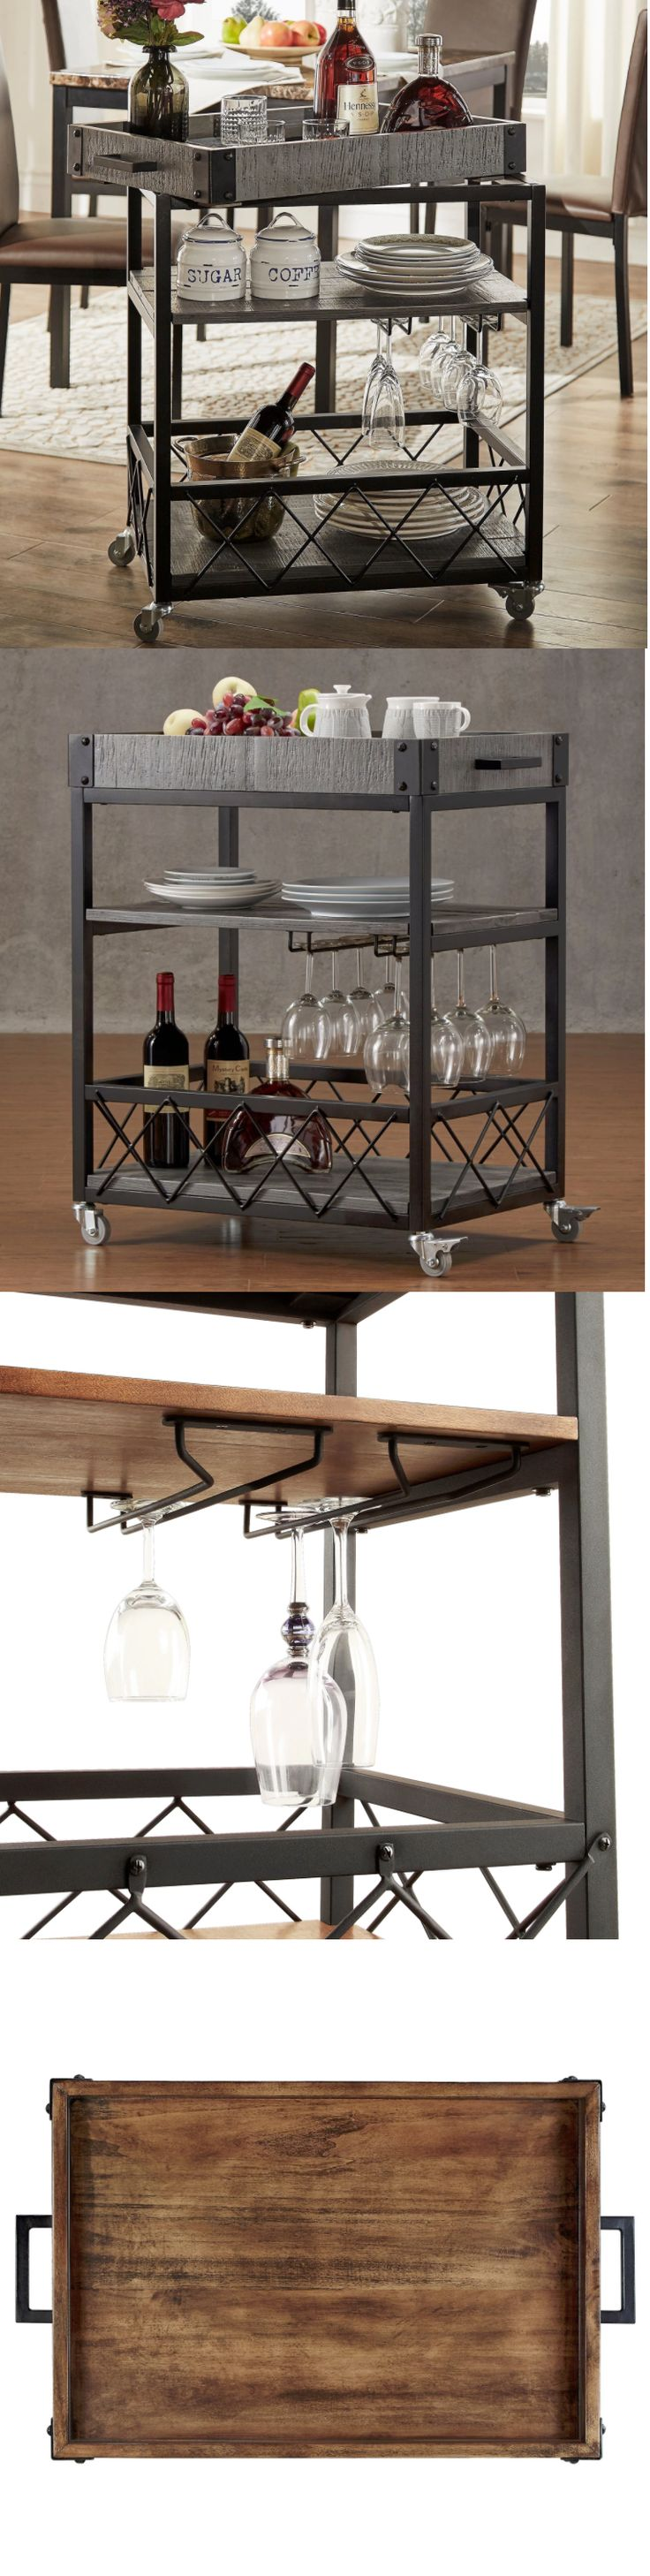 the 25 best kitchen utility cart ideas on pinterest utility bar carts and serving carts 183320 serving carts on wheels small kitchen utility storage tea